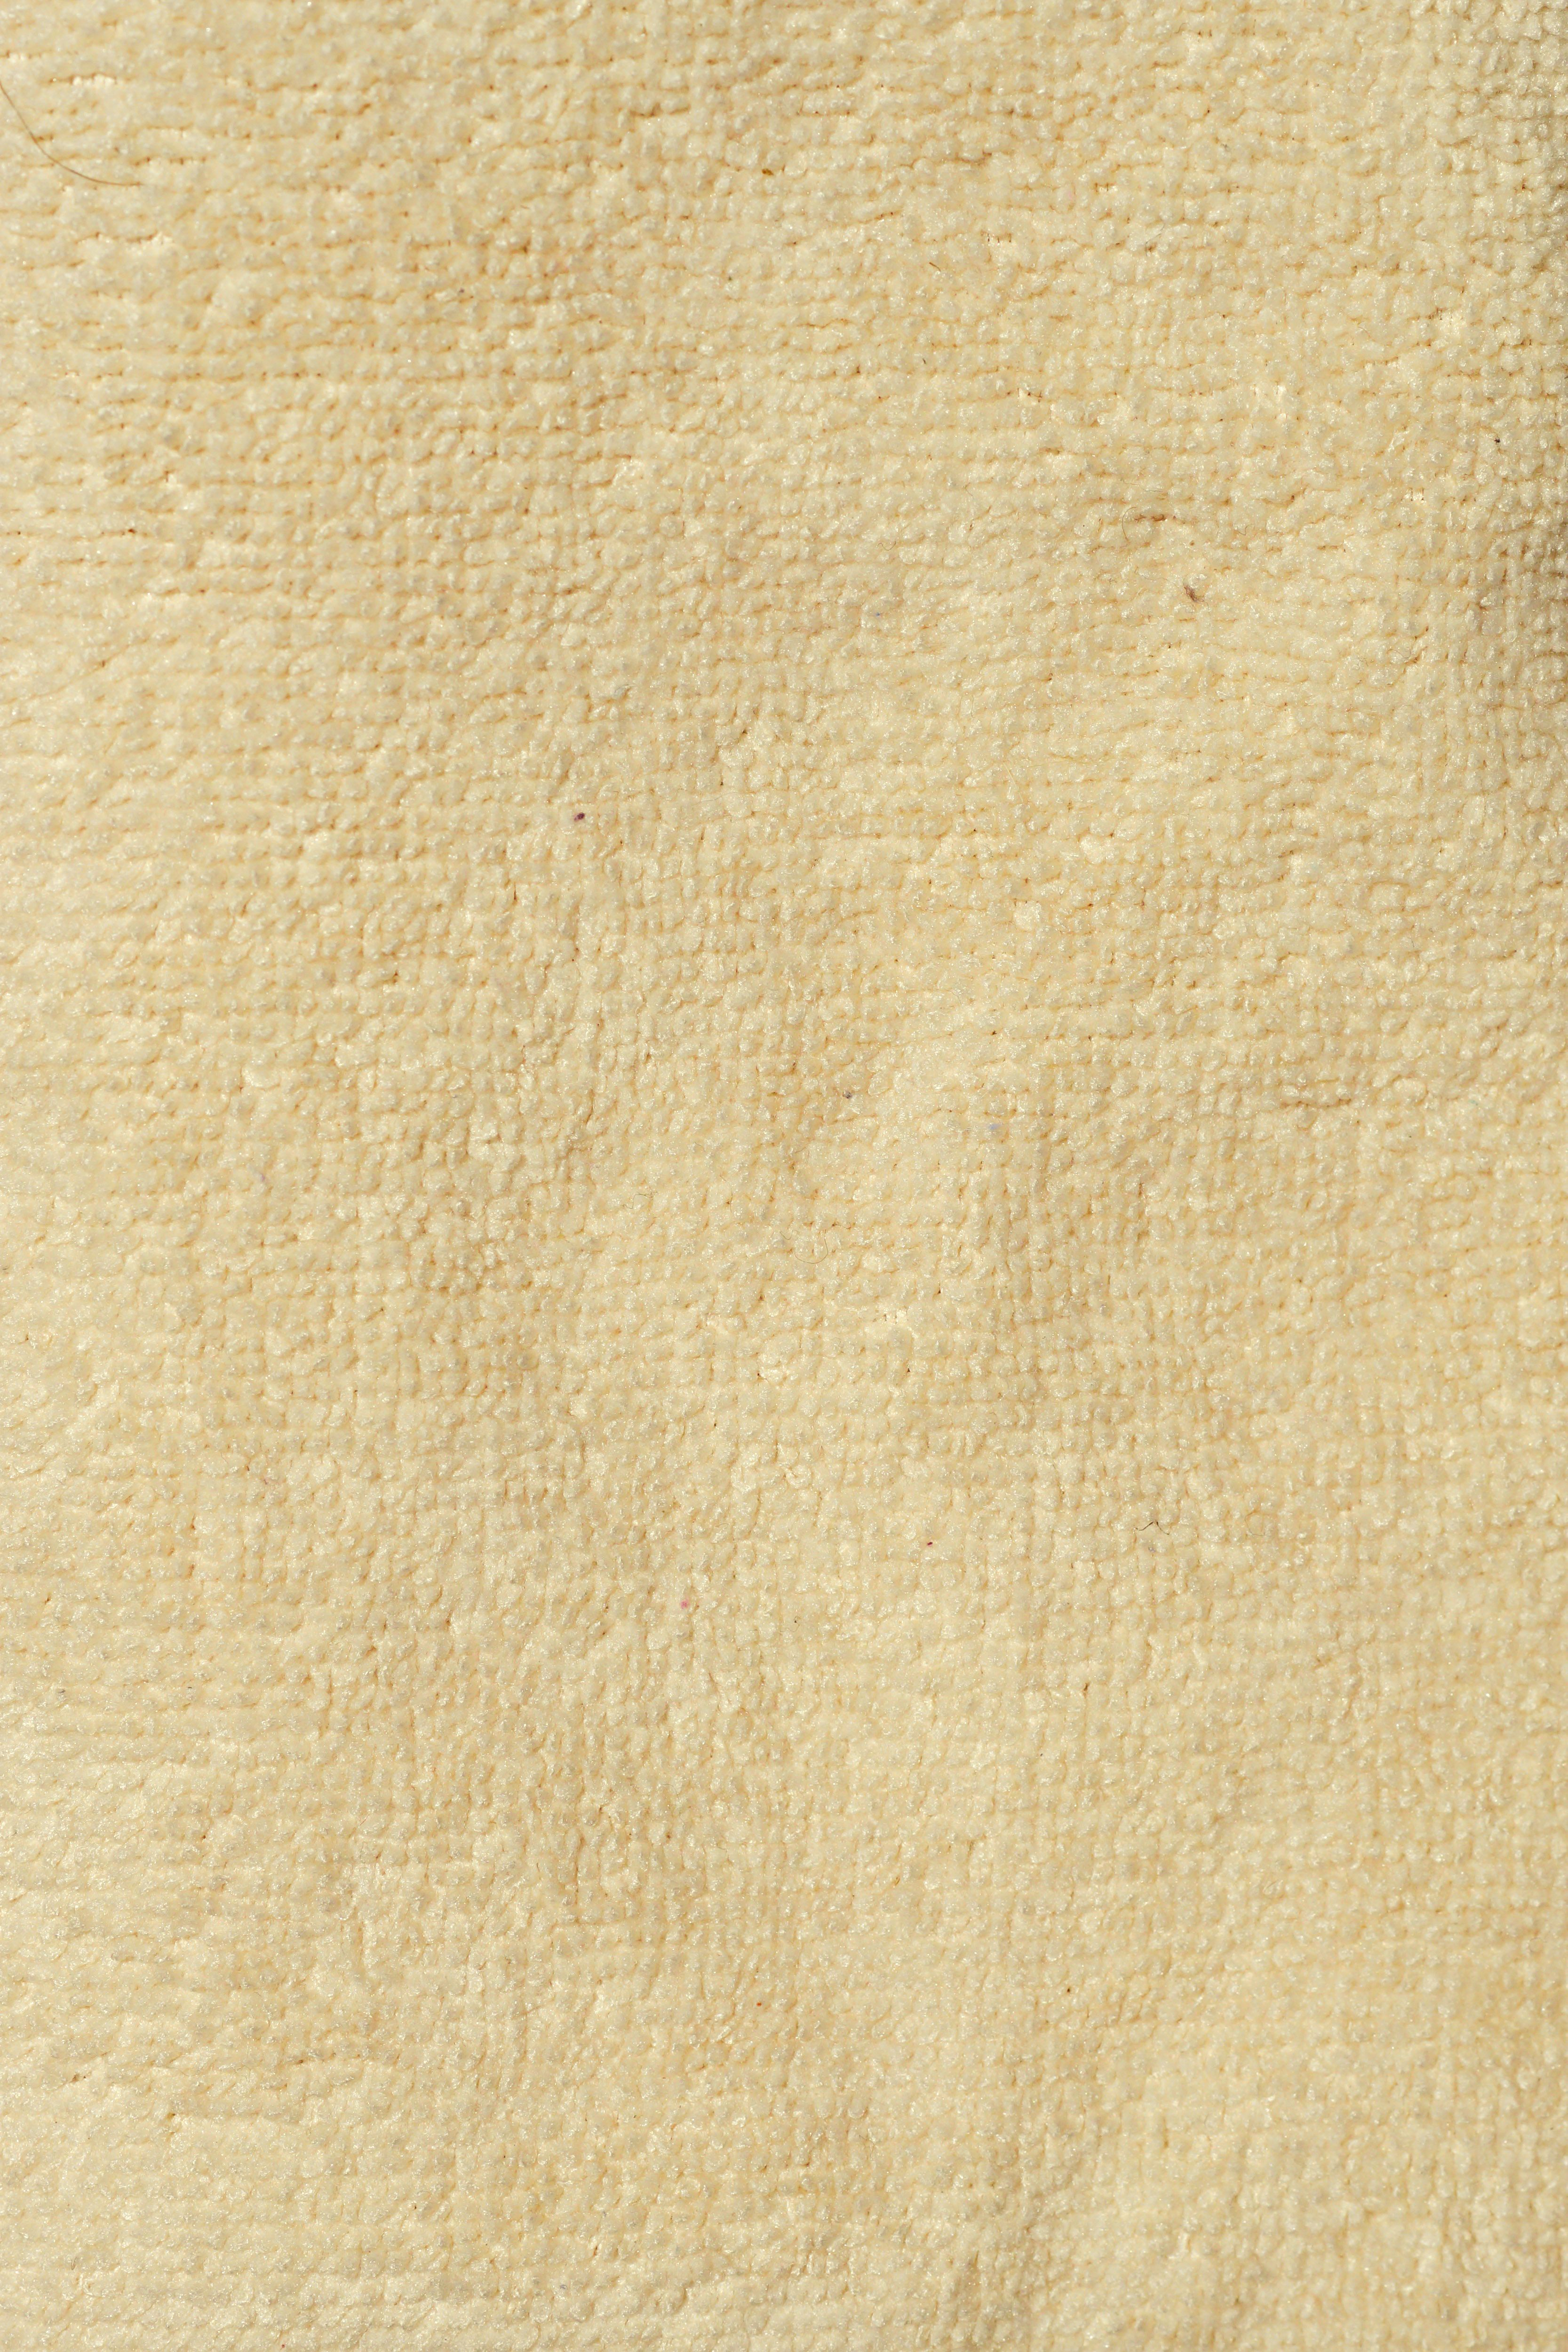 Beige Light Brown Coloured Towel Texture Http Www